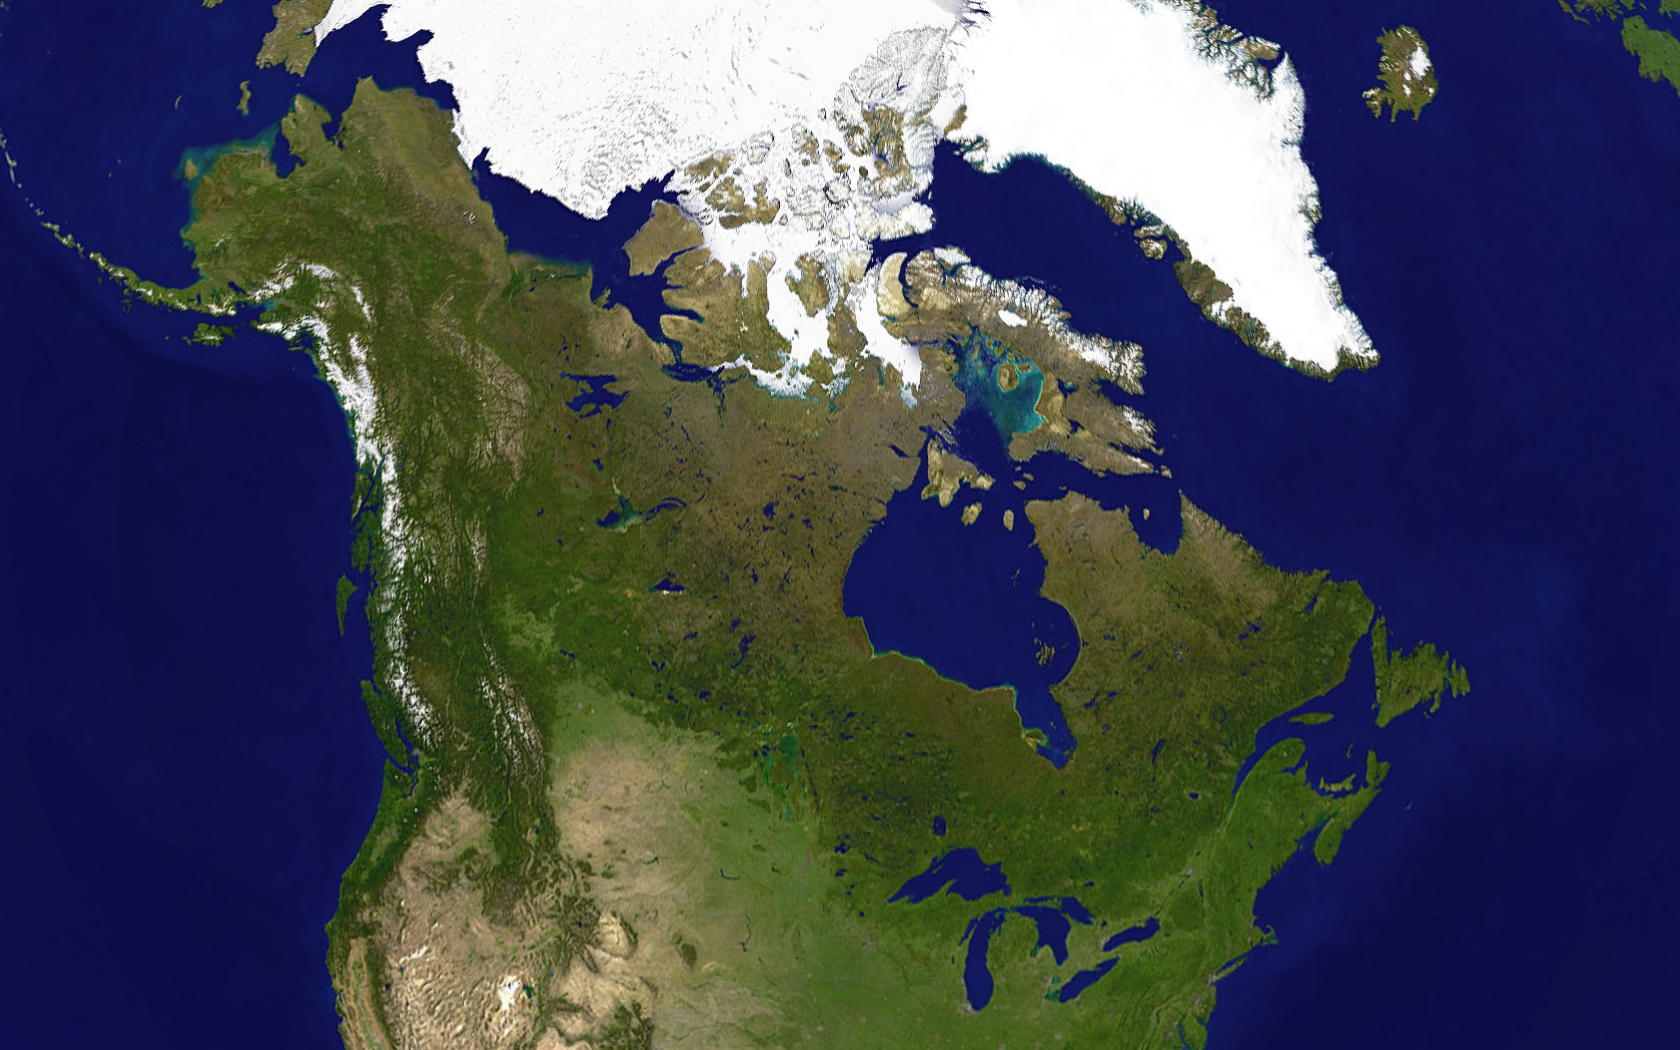 The Canadian boreal forest is visible in satellite imagery as a broad green band stretching from coast to coast between the northern tundra and southern temperate forests and grasslands. We are currently developing a fragrance wildcrafted from this region. The boreal forest is the world's largest biome apart from the oceans.